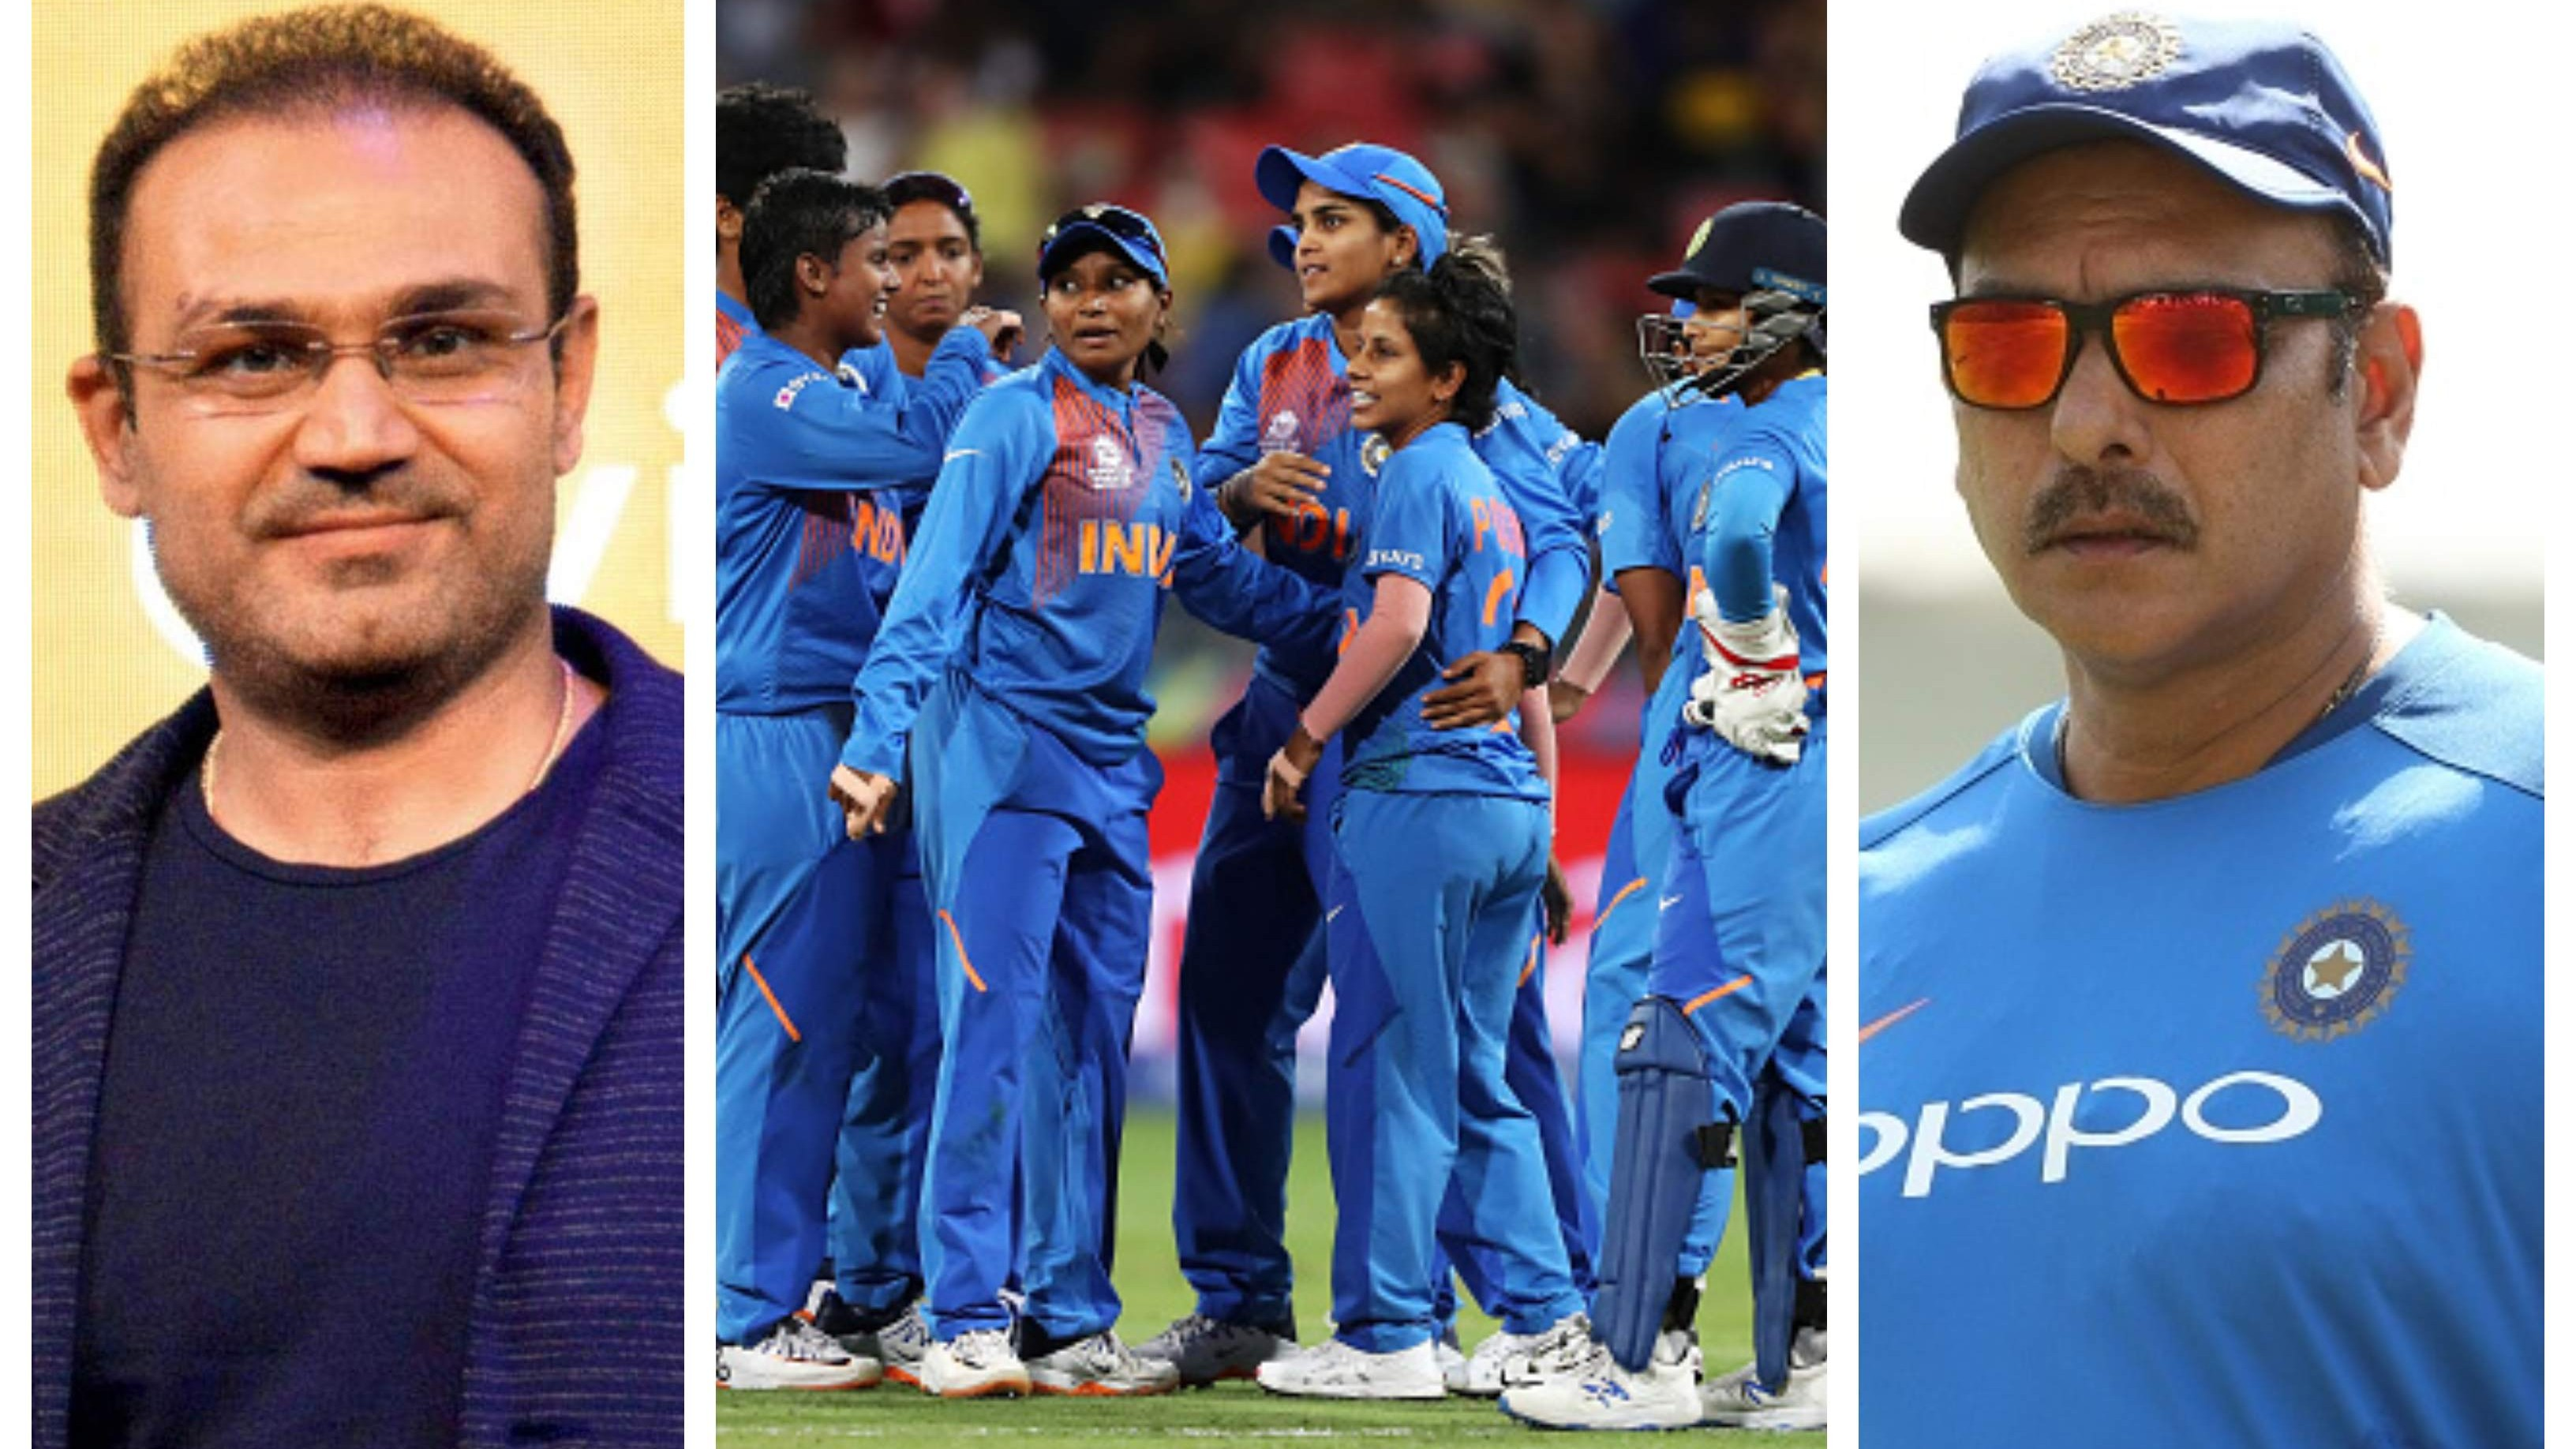 Women's T20WC 2020: Cricket fraternity hails India's convincing win against Australia in tournament opener